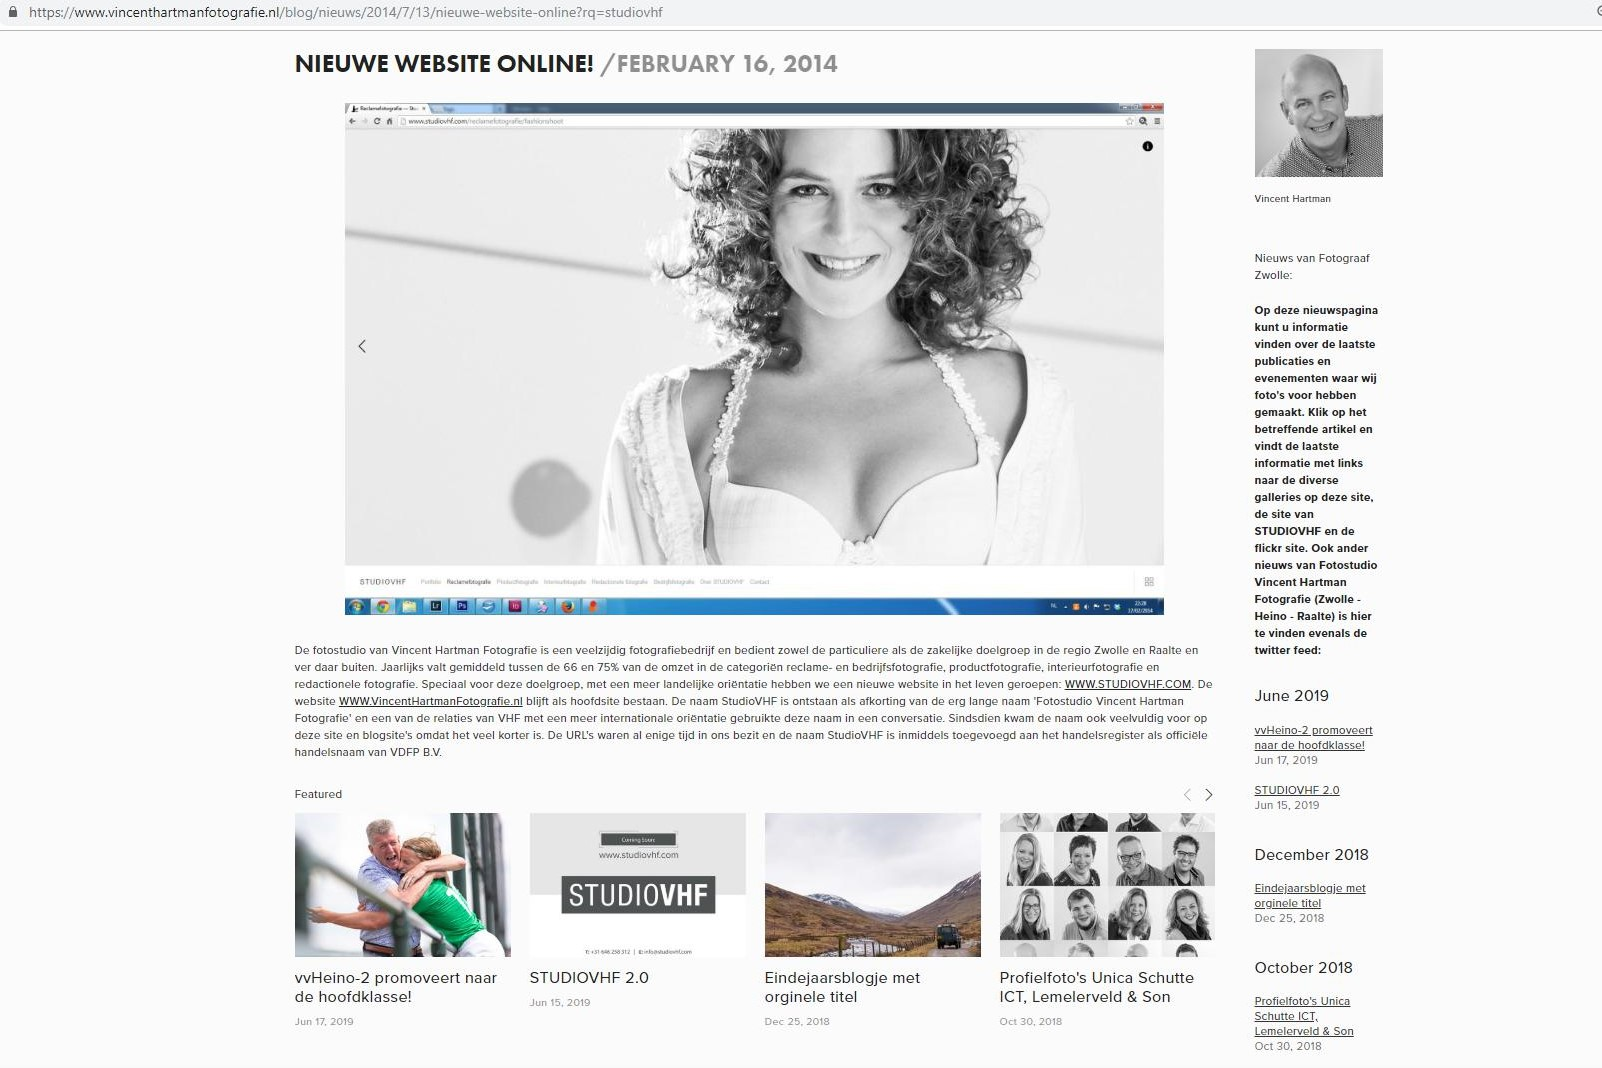 The split-up of private photography and commercial photography with a new website